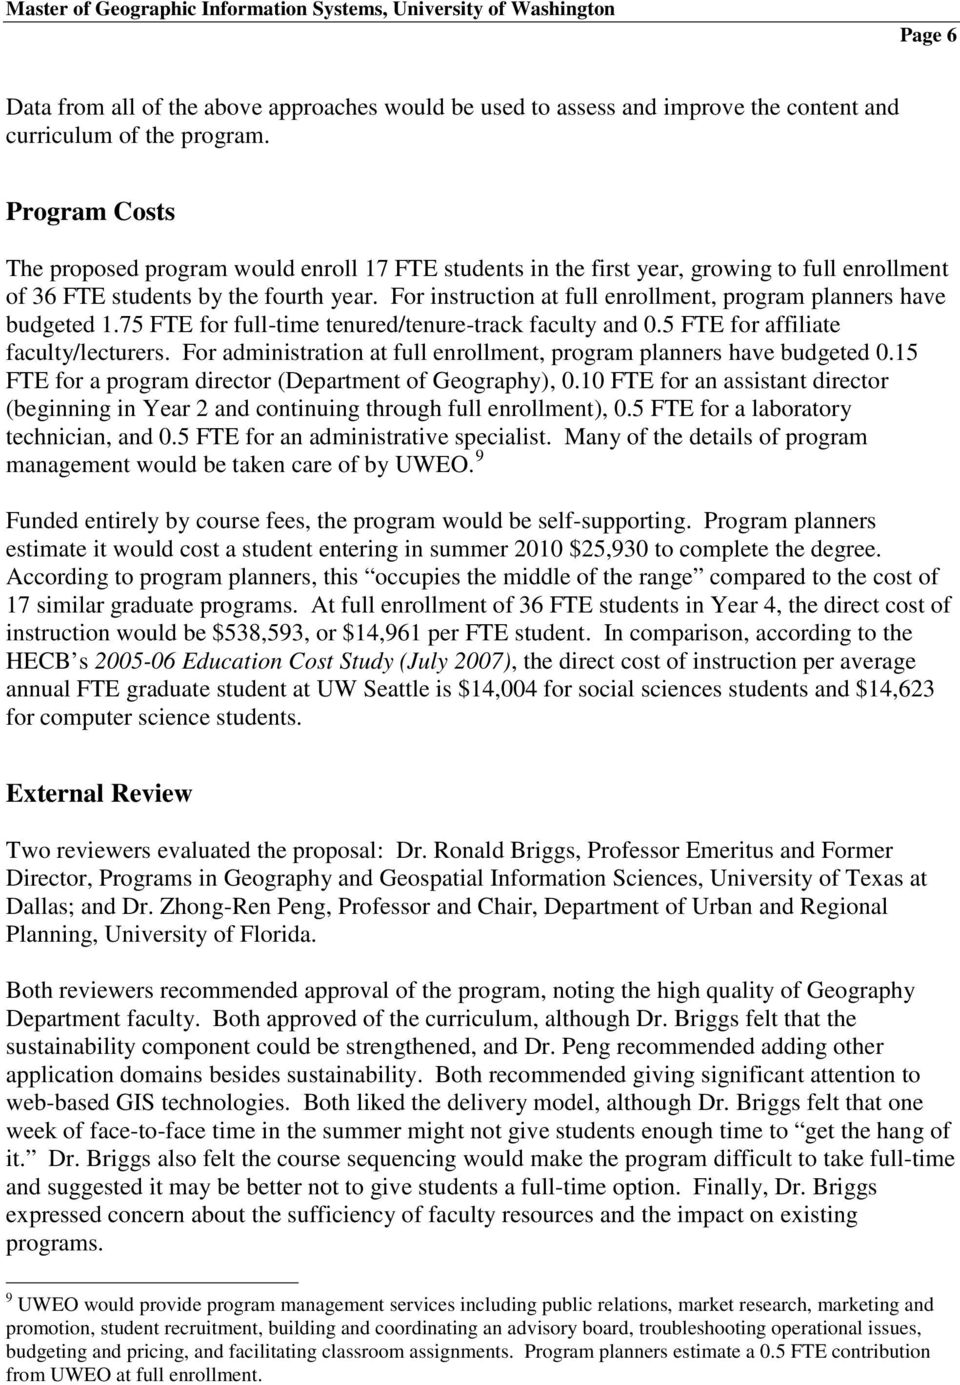 For instruction at full enrollment, program planners have budgeted 1.75 FTE for full-time tenured/tenure-track faculty and 0.5 FTE for affiliate faculty/lecturers.